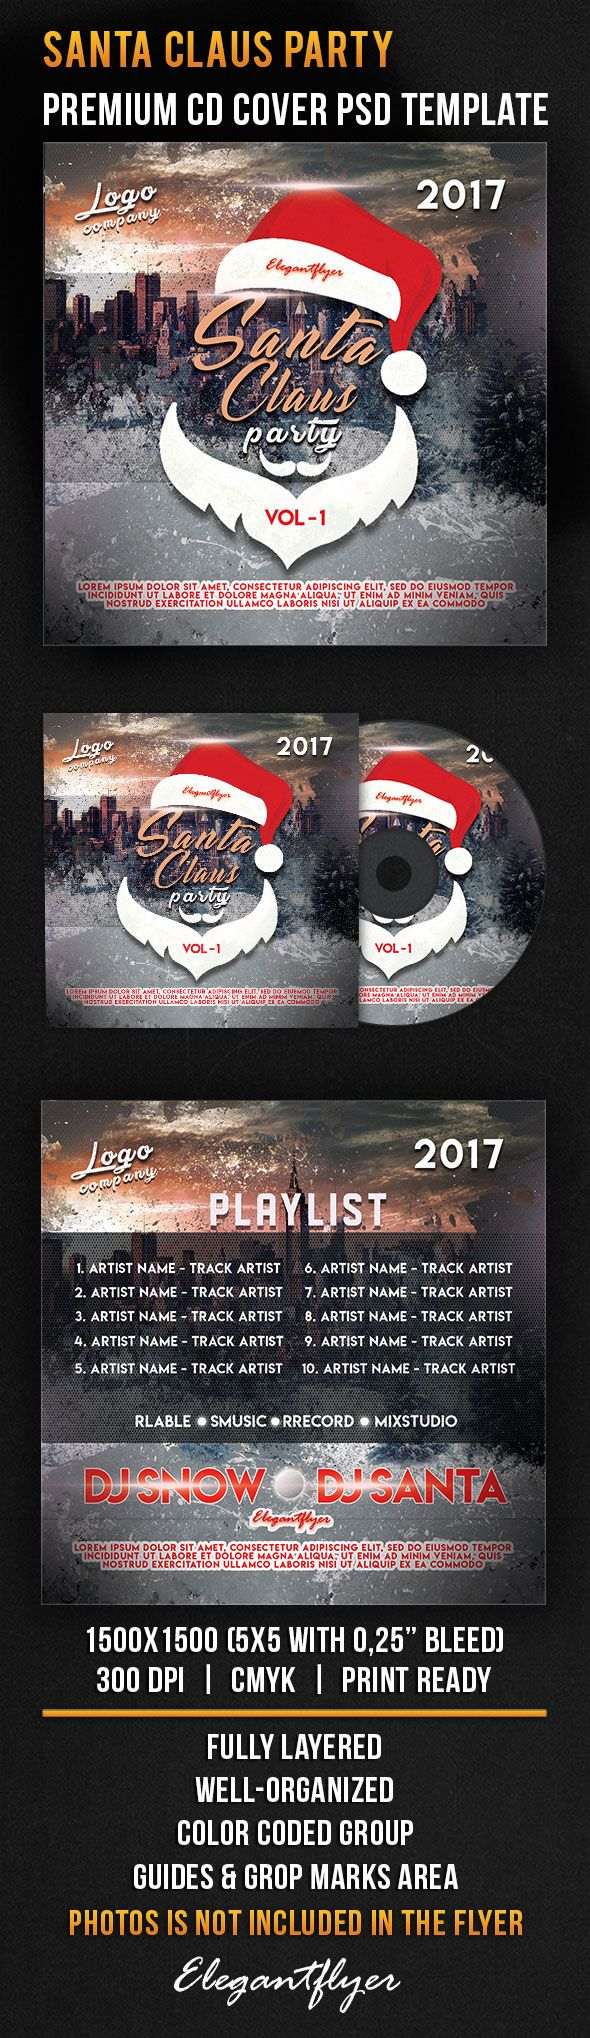 Santa Claus Party – Premium CD Cover PSD Template